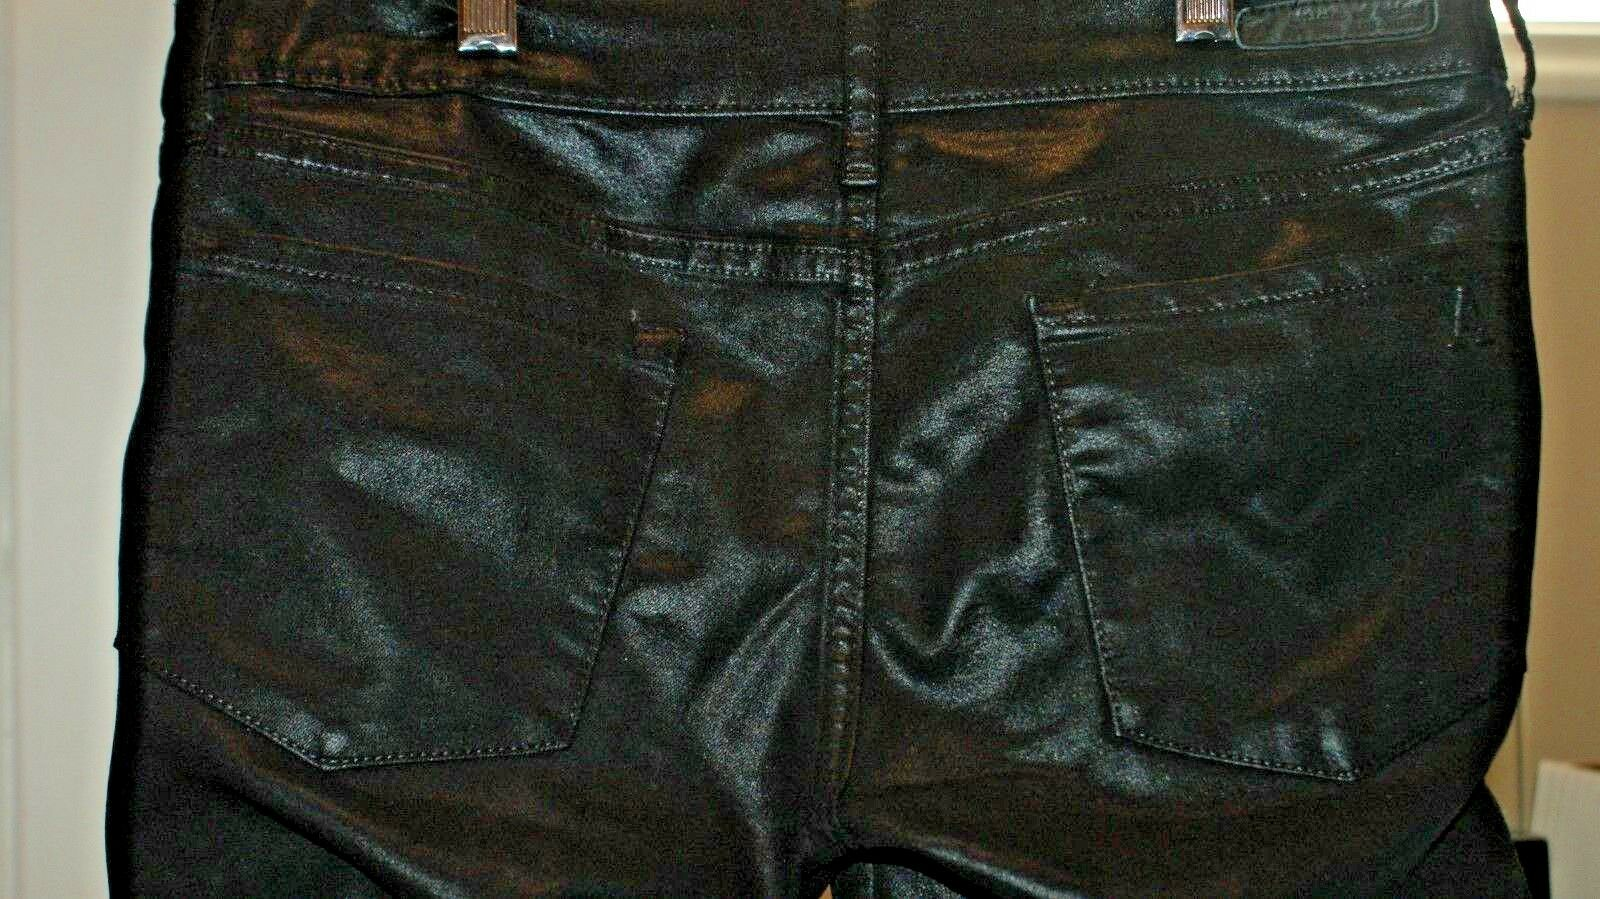 Articles of Society Blk Mya Moto Power Stretch Coated Skinny Fit Jeans Size 28